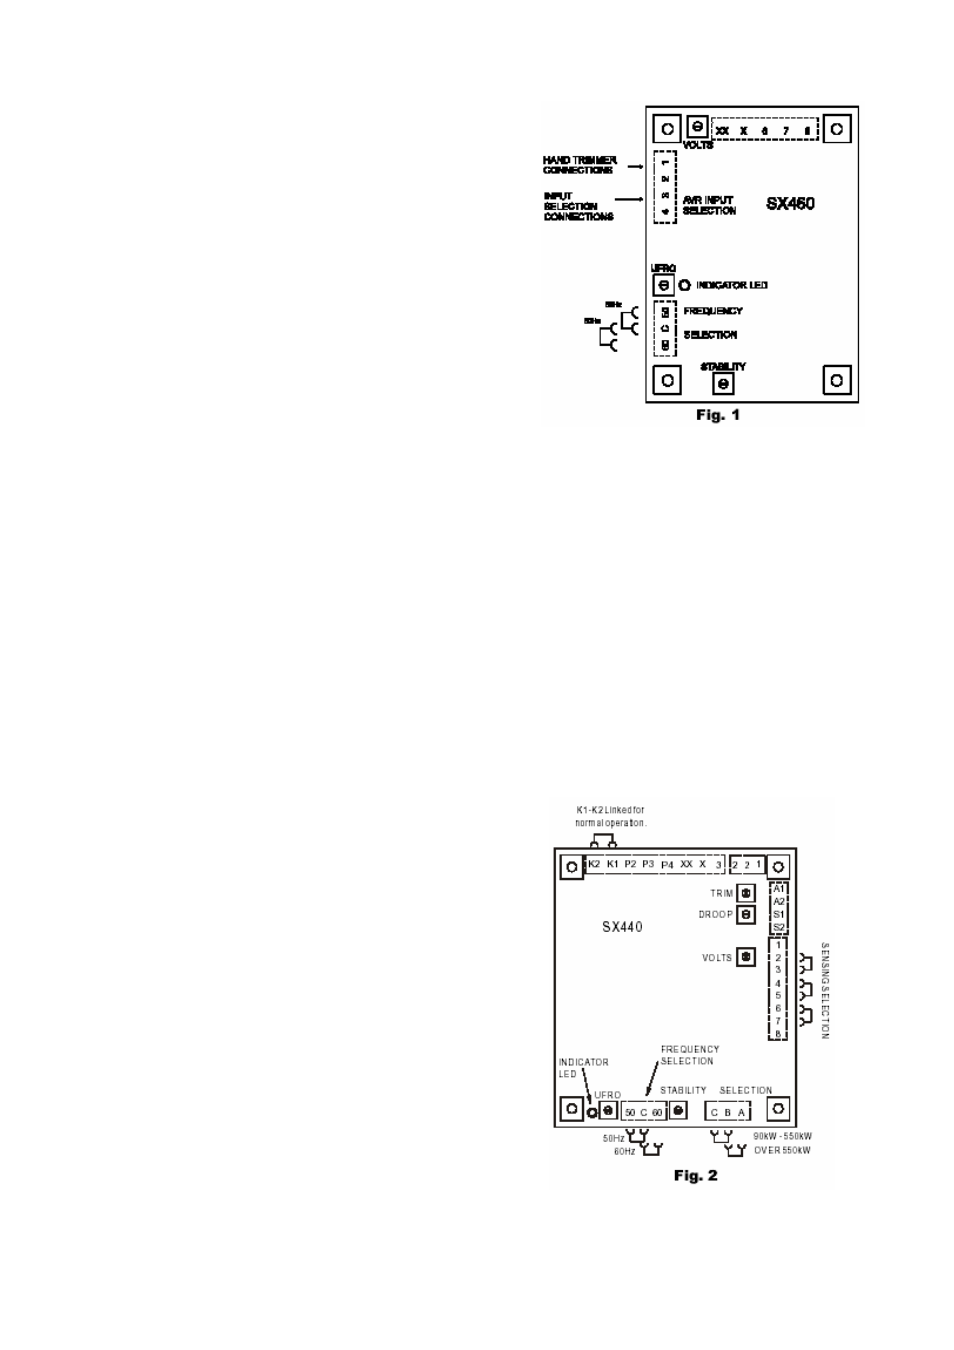 pi manufacturing ac generators page12 pi manufacturing ac generators user manual page 12 43 sx440 avr wiring diagram at crackthecode.co